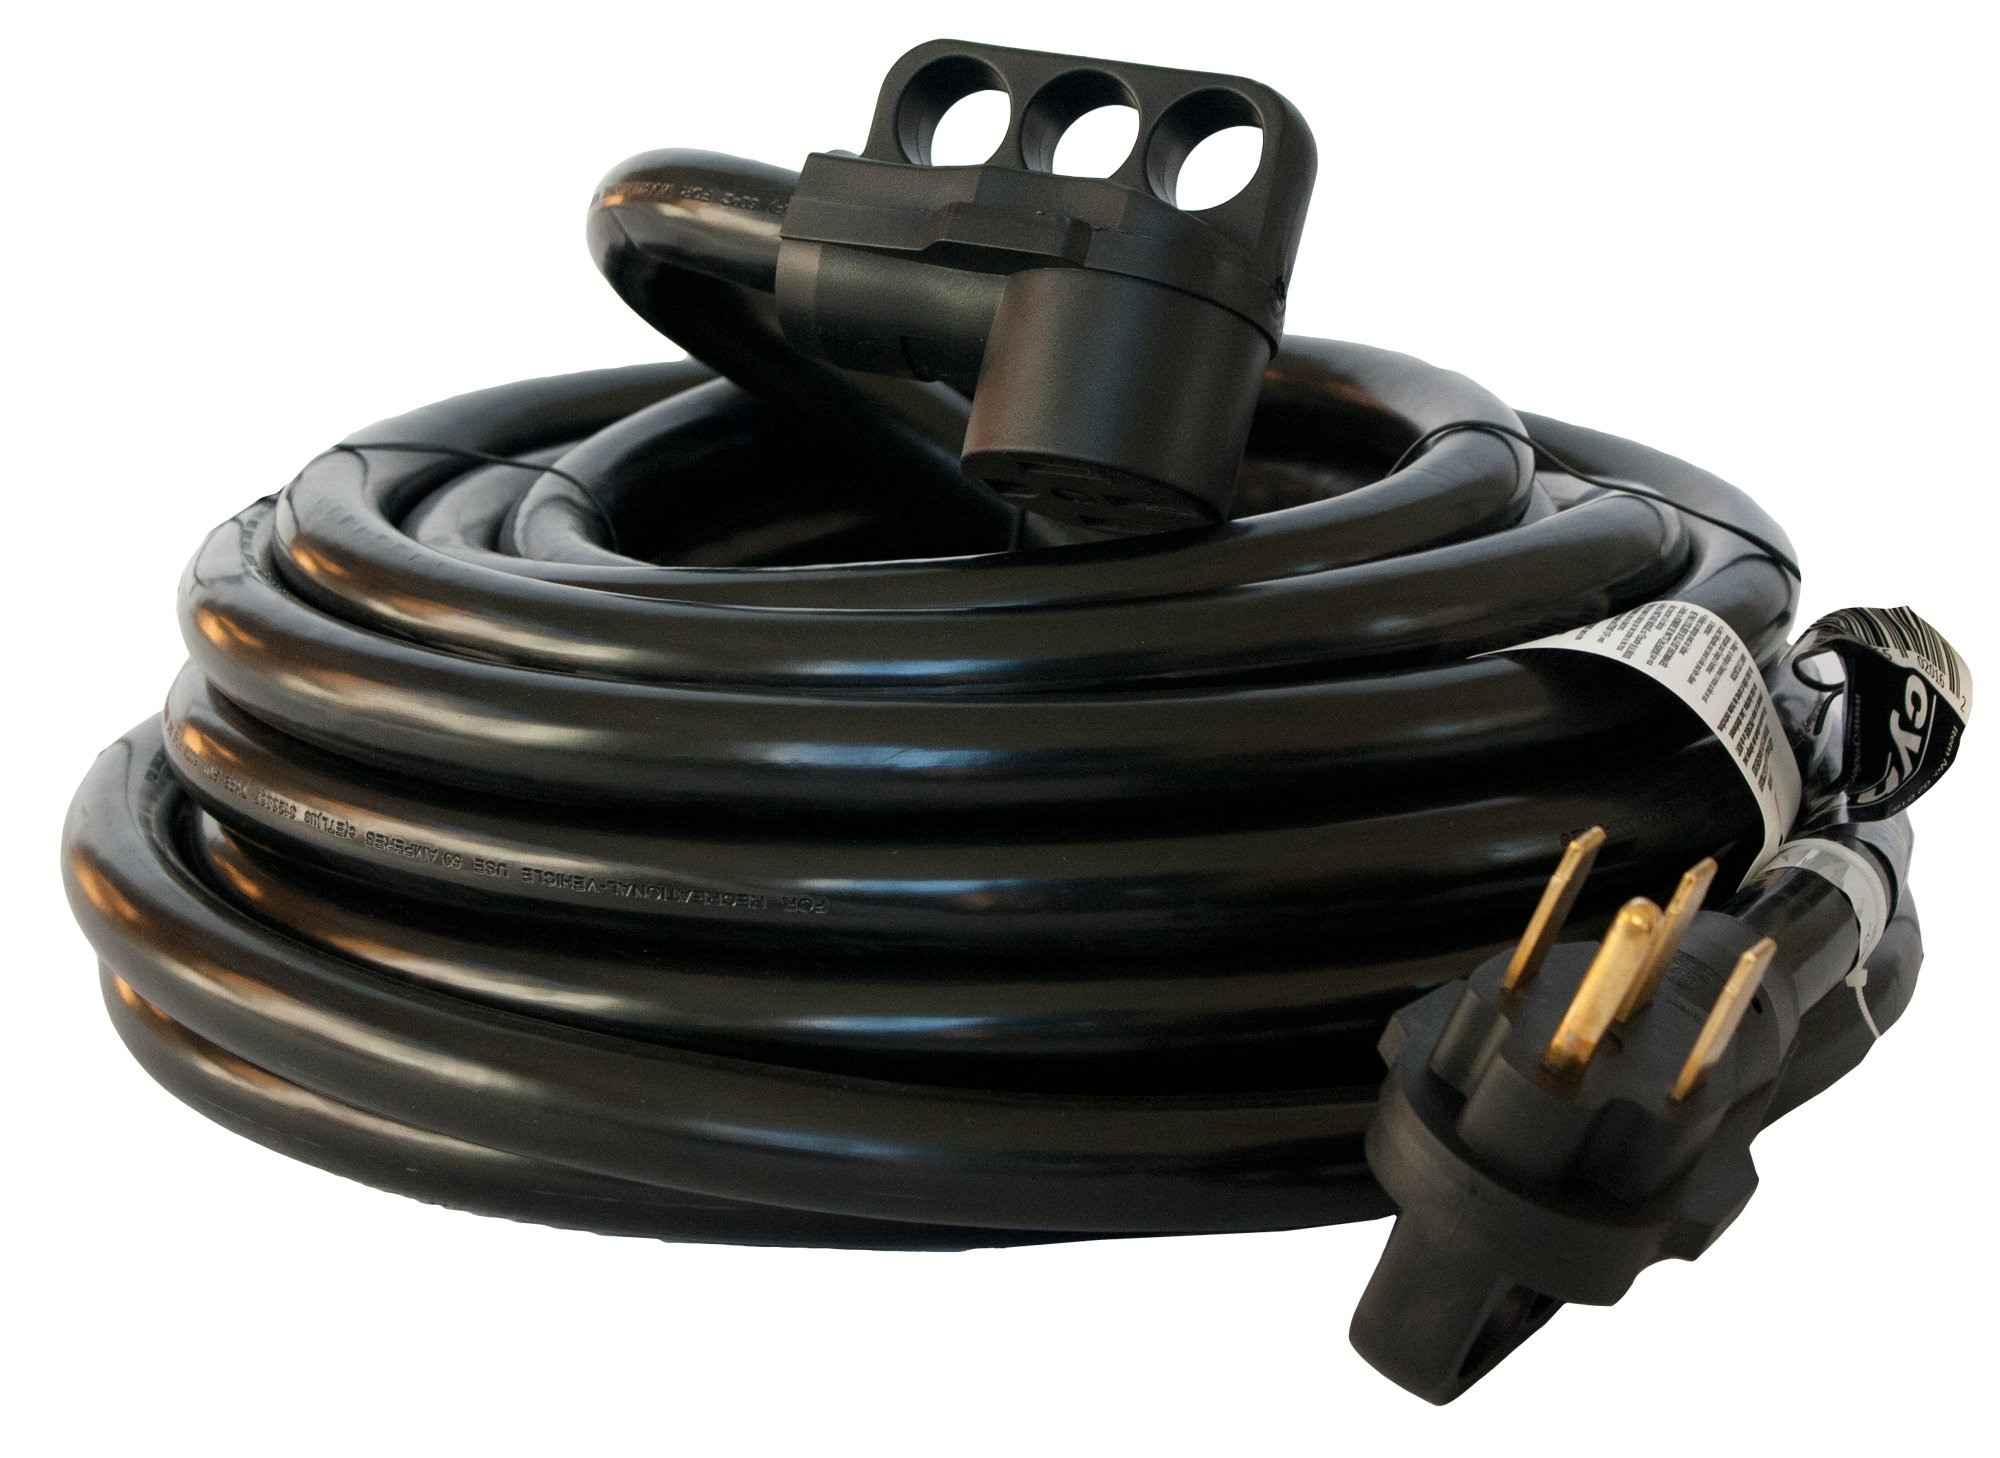 50 Amp Cynder 02016 RV Camper Electrical Extension Cord 50' ft with Handle (50 Feet, Black) by Cynder (Image #3)